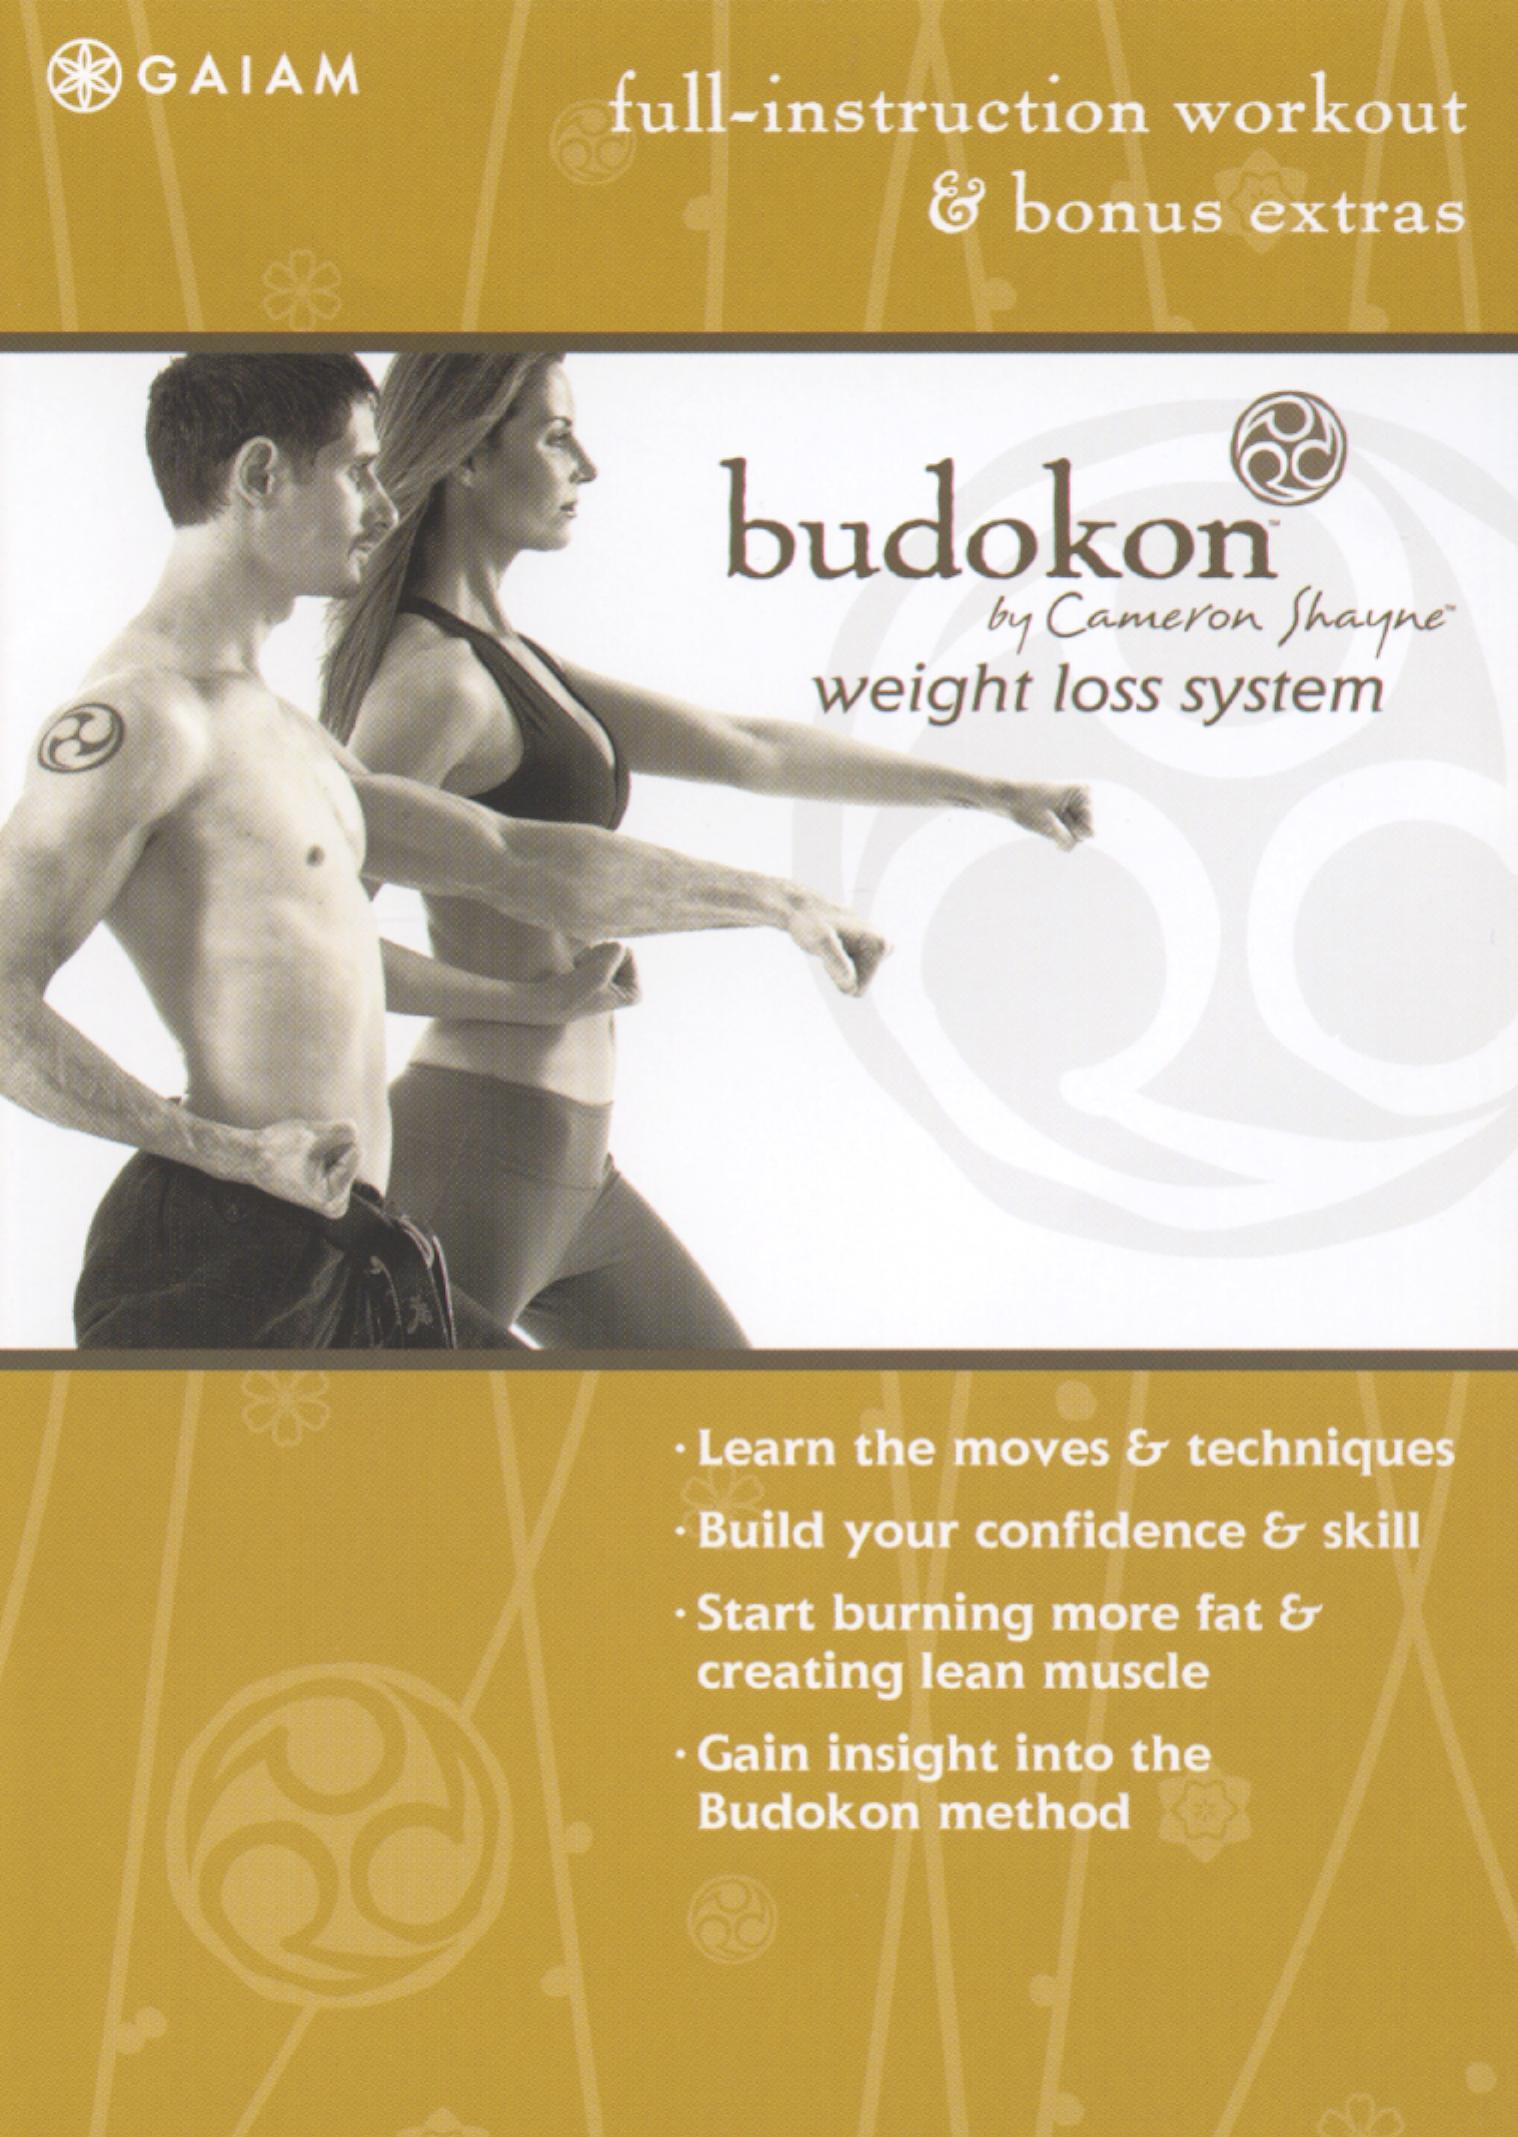 Budokon by Cameron Shayne: Weight Loss System